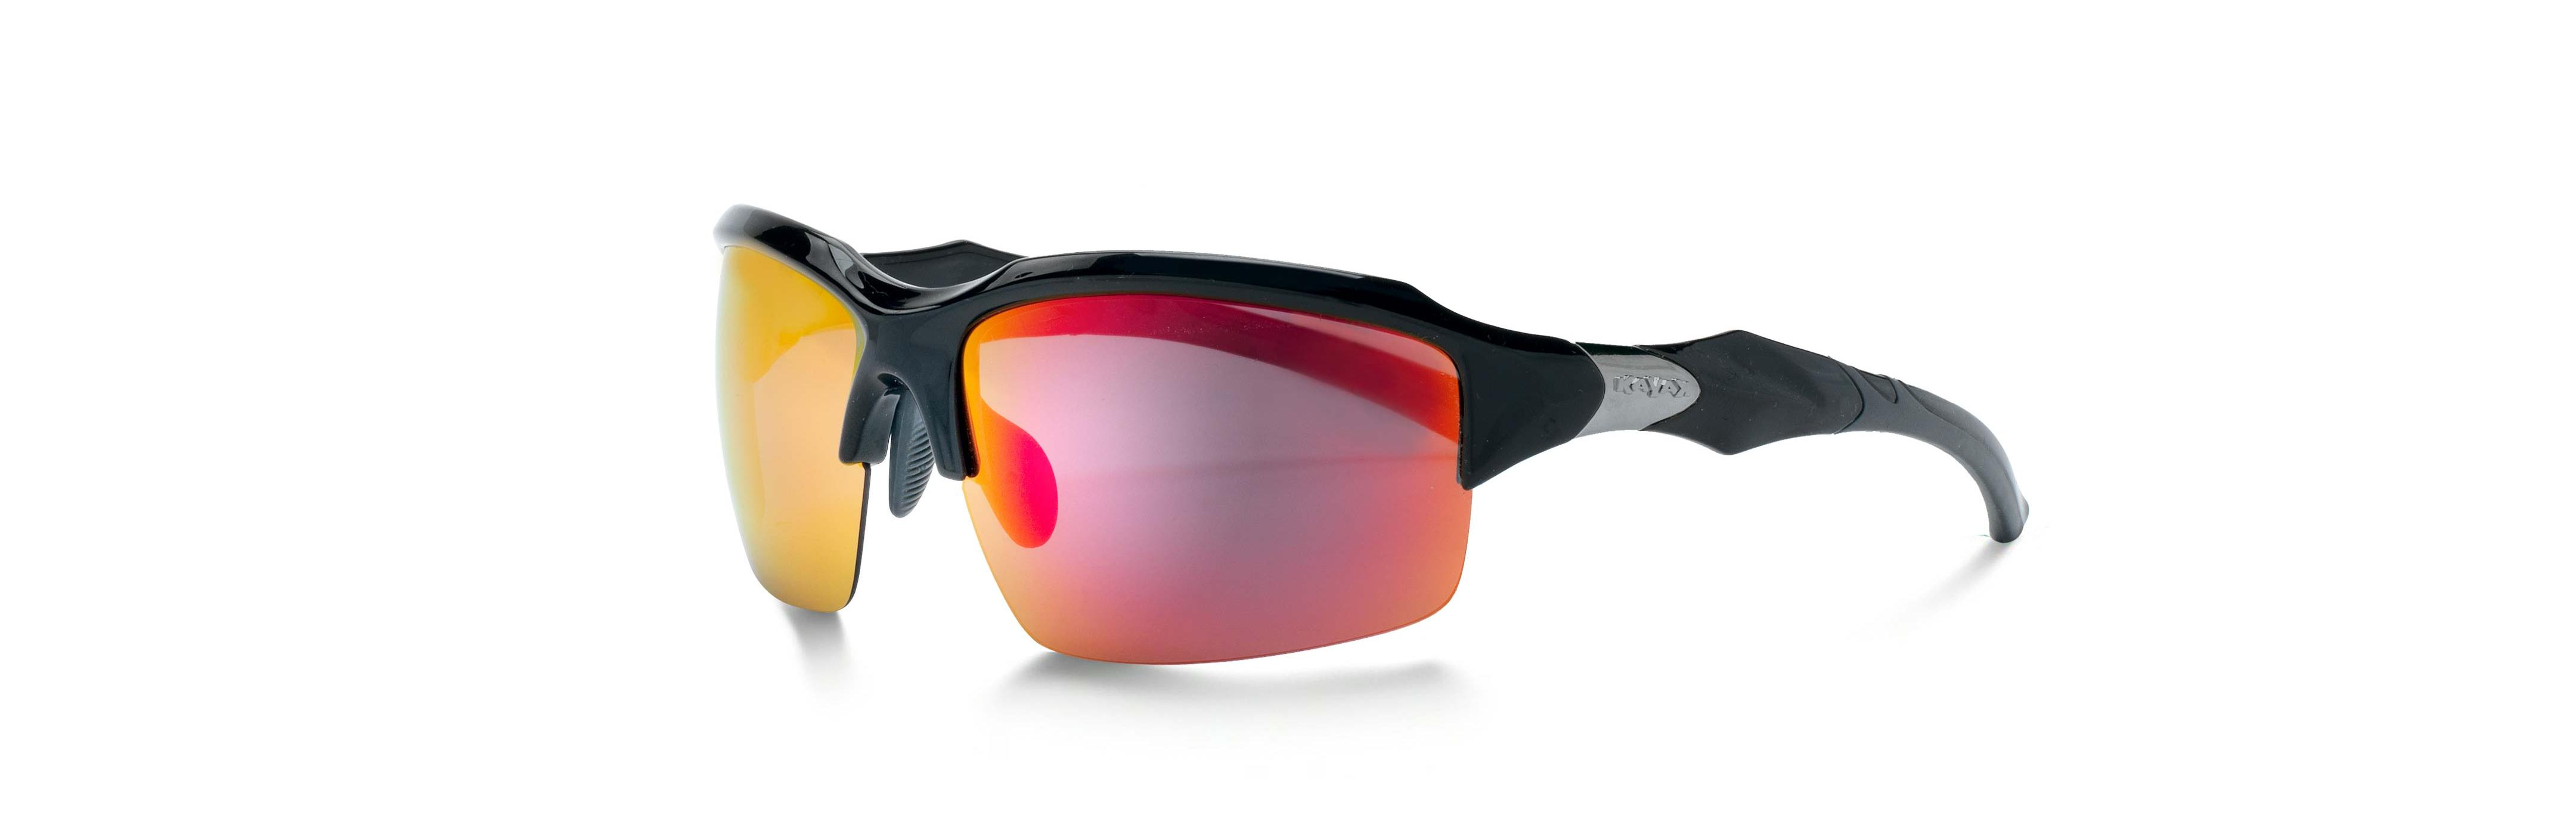 7aaa30efc010 Polarized cycling glasses that you can use also in your free time  Raptor